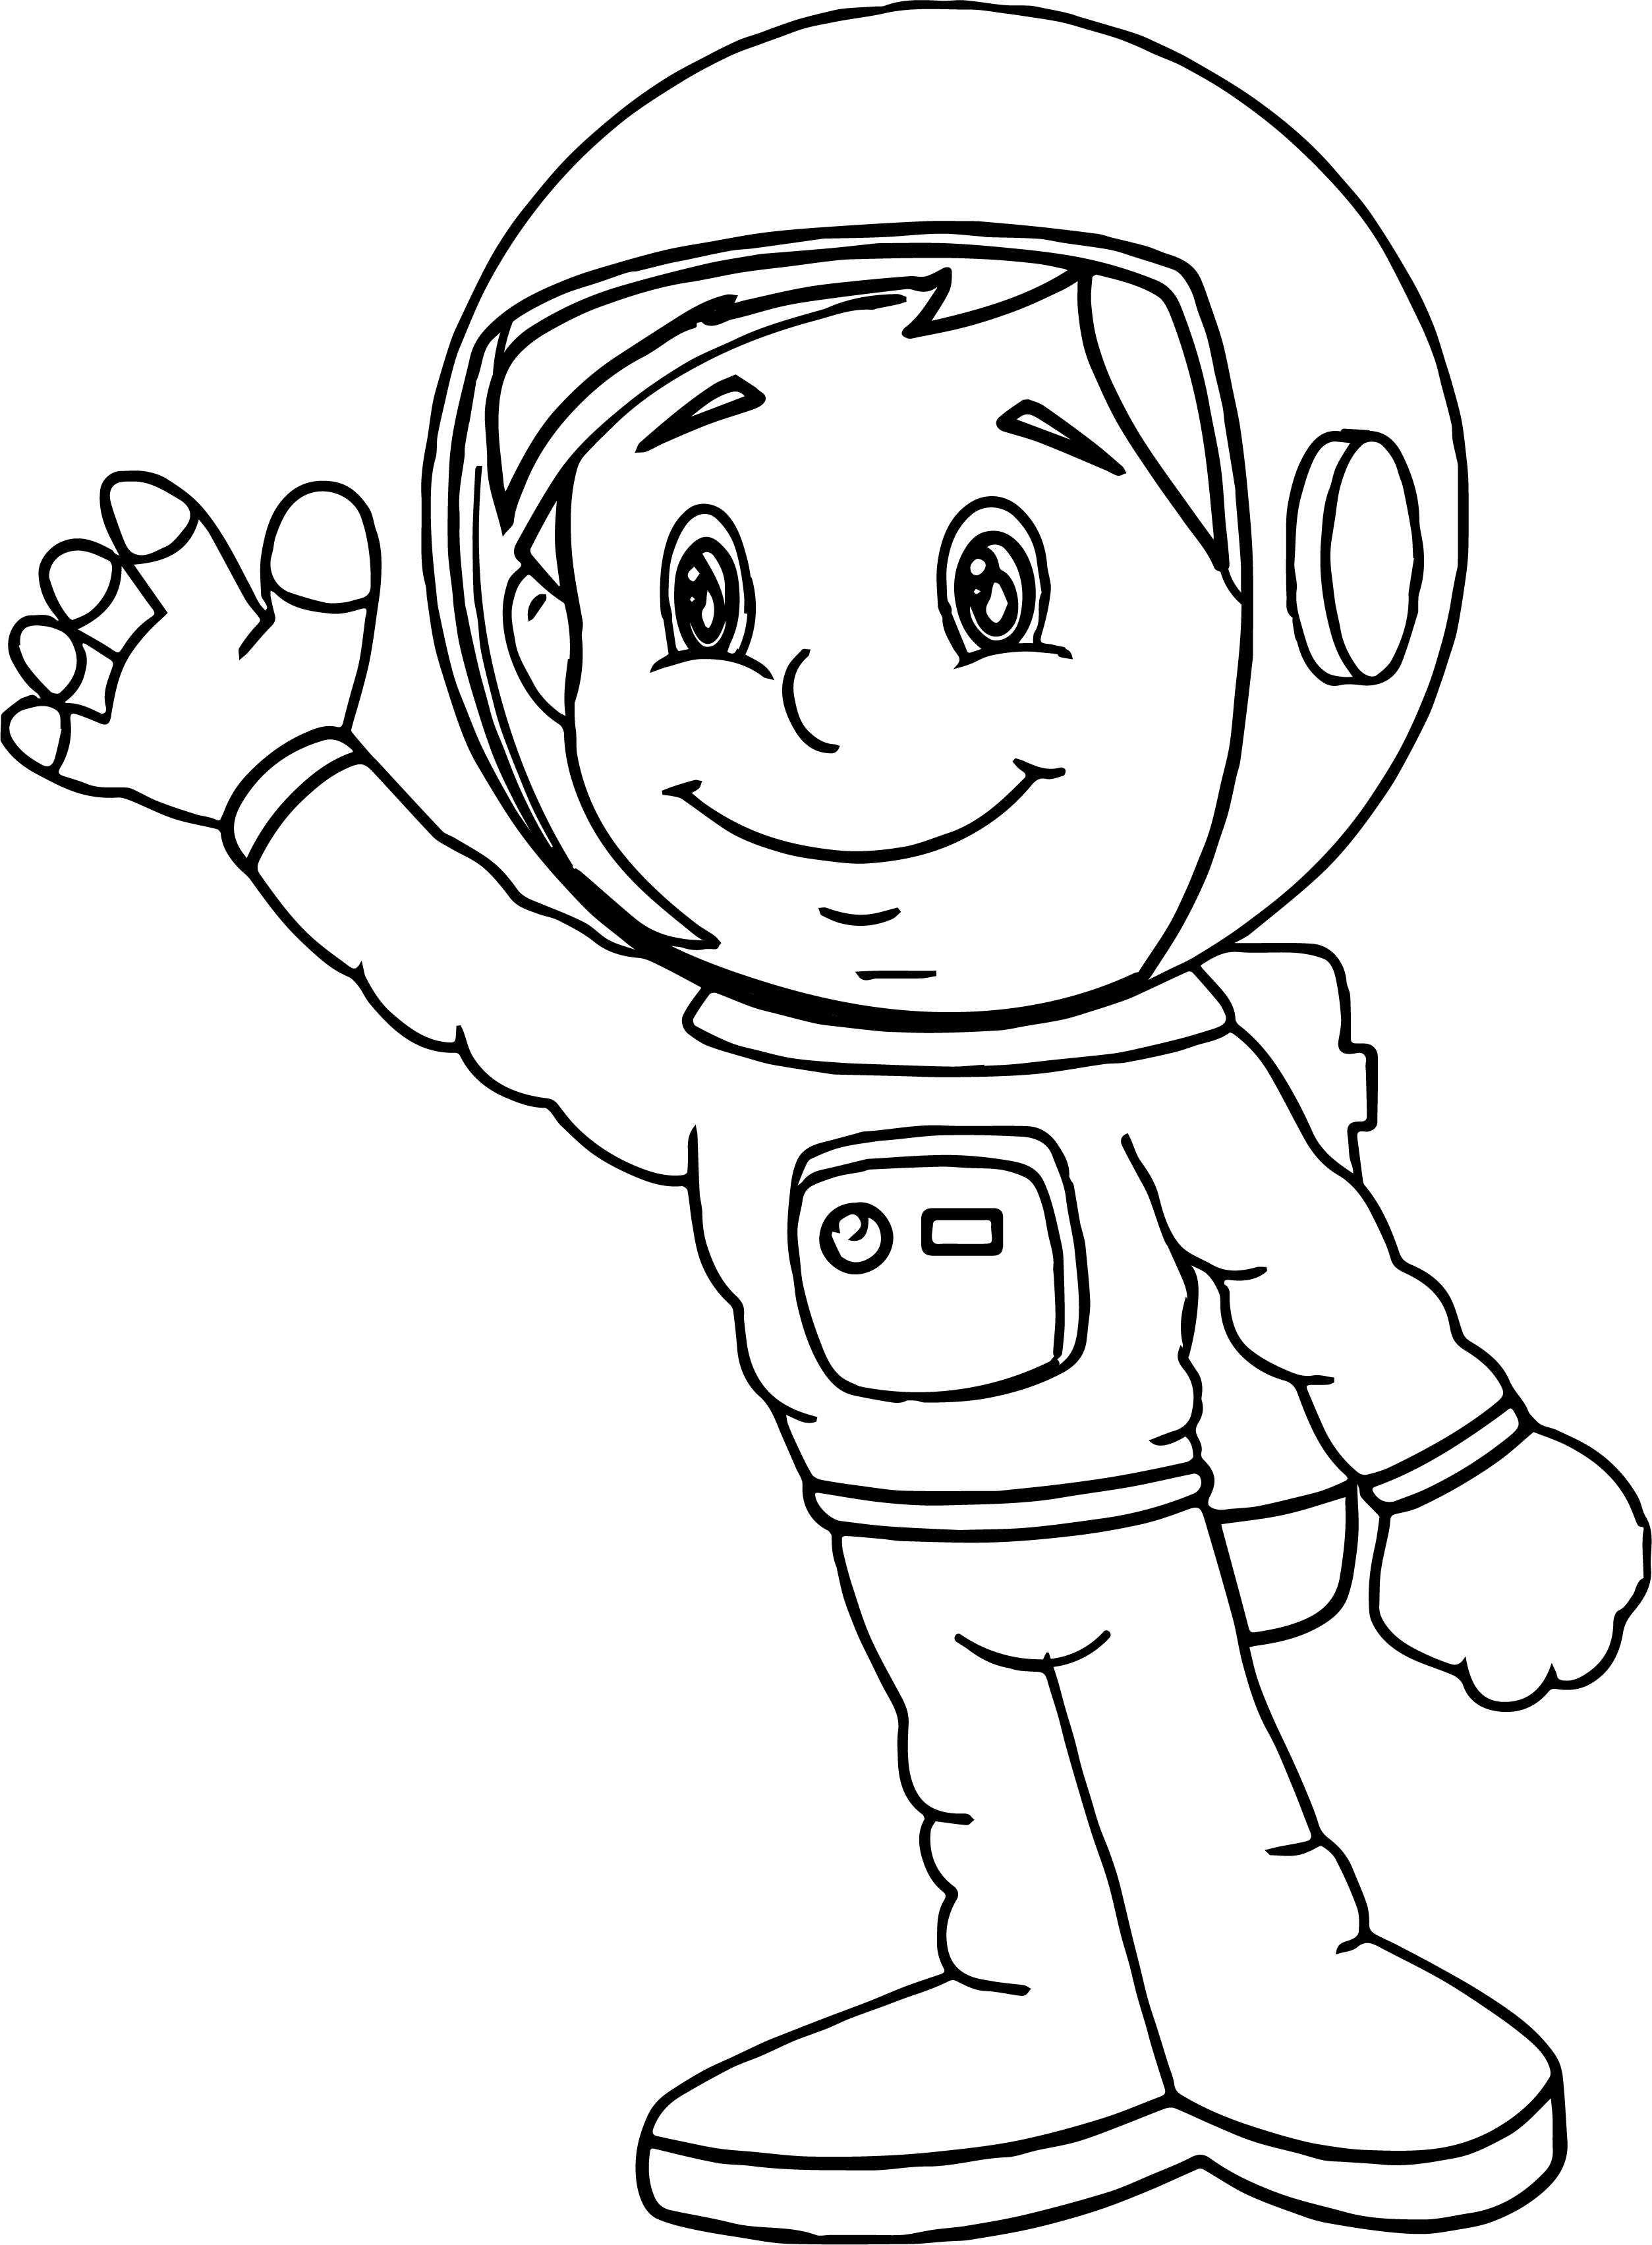 astronaut coloring pages - astronaut boy coloring page